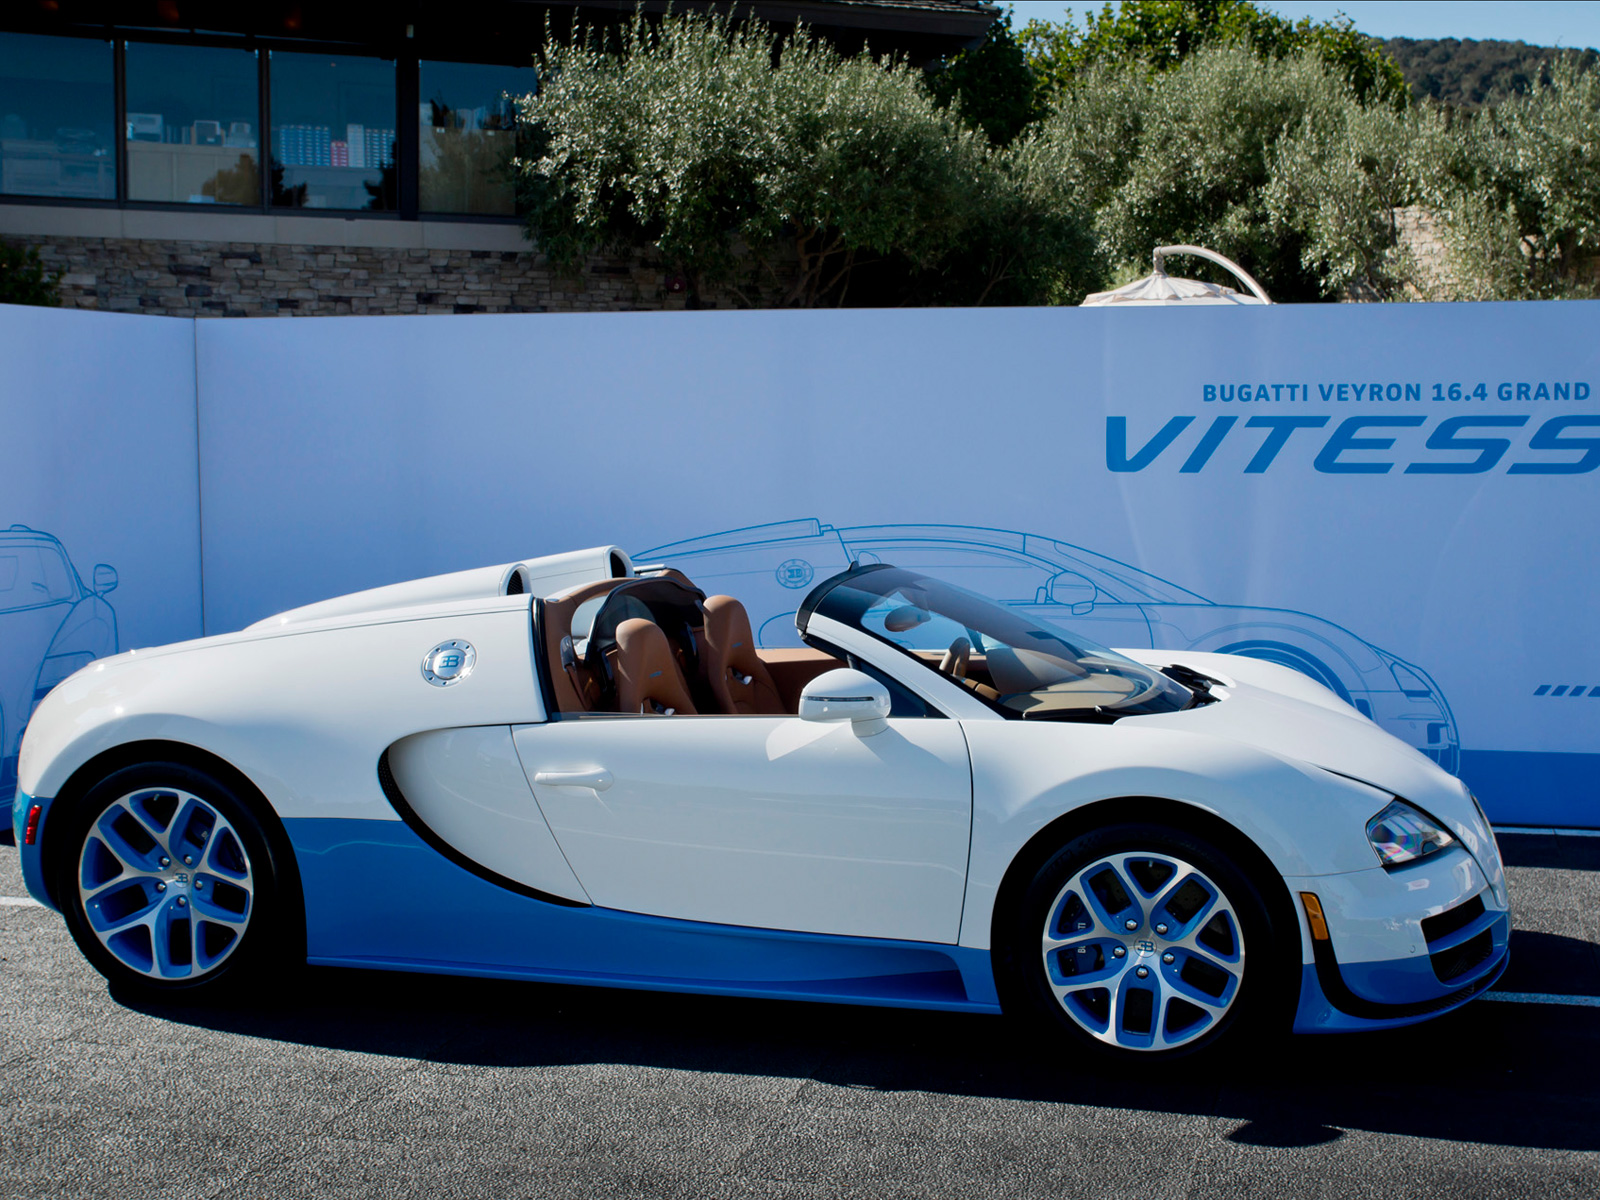 2012+Bugatti+Veyron+Grand+Sport+Vitesse+Special+Edition+3 Inspiring 2012 Bugatti Veyron Grand Sport Vitesse top Speed Cars Trend